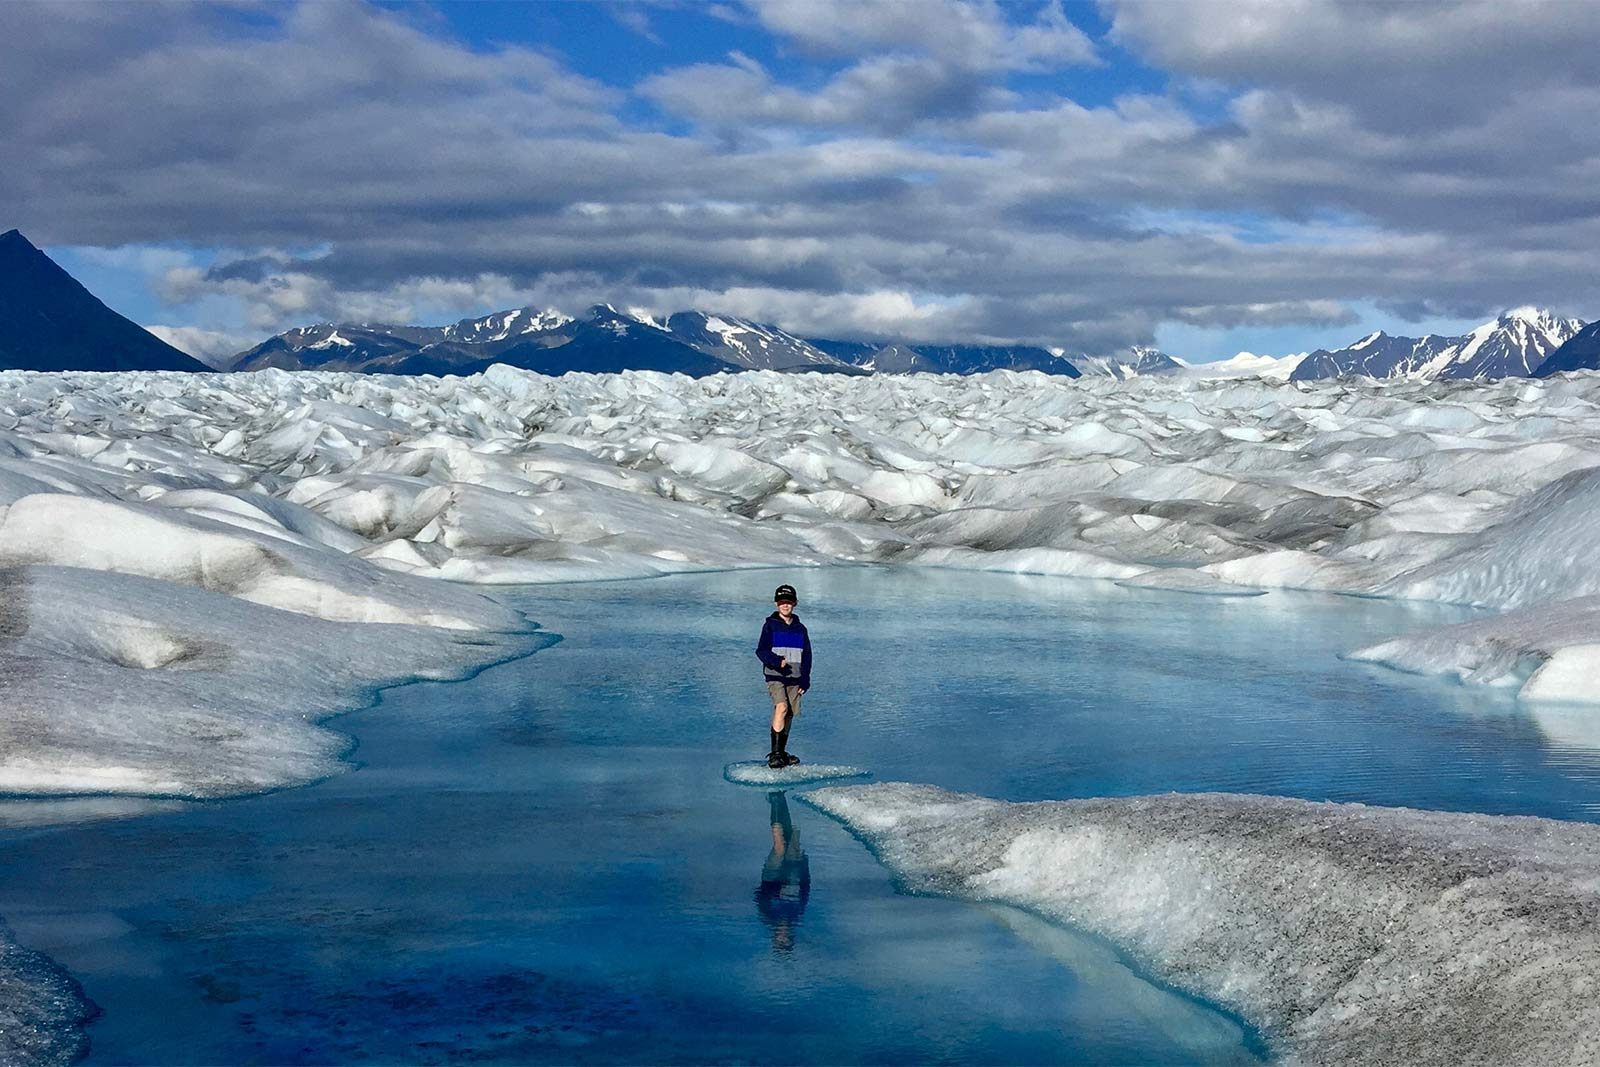 juneau alaska helicopter glacier tours with Glacier Landing Tours on Mendenhall Lake Kayaking Adventure in addition 10 Free Or Cheap Things To Do In Skagway furthermore Glacier Point Wilderness Safari also Grizzly Falls Ziplining Expedition furthermore akdogtour.